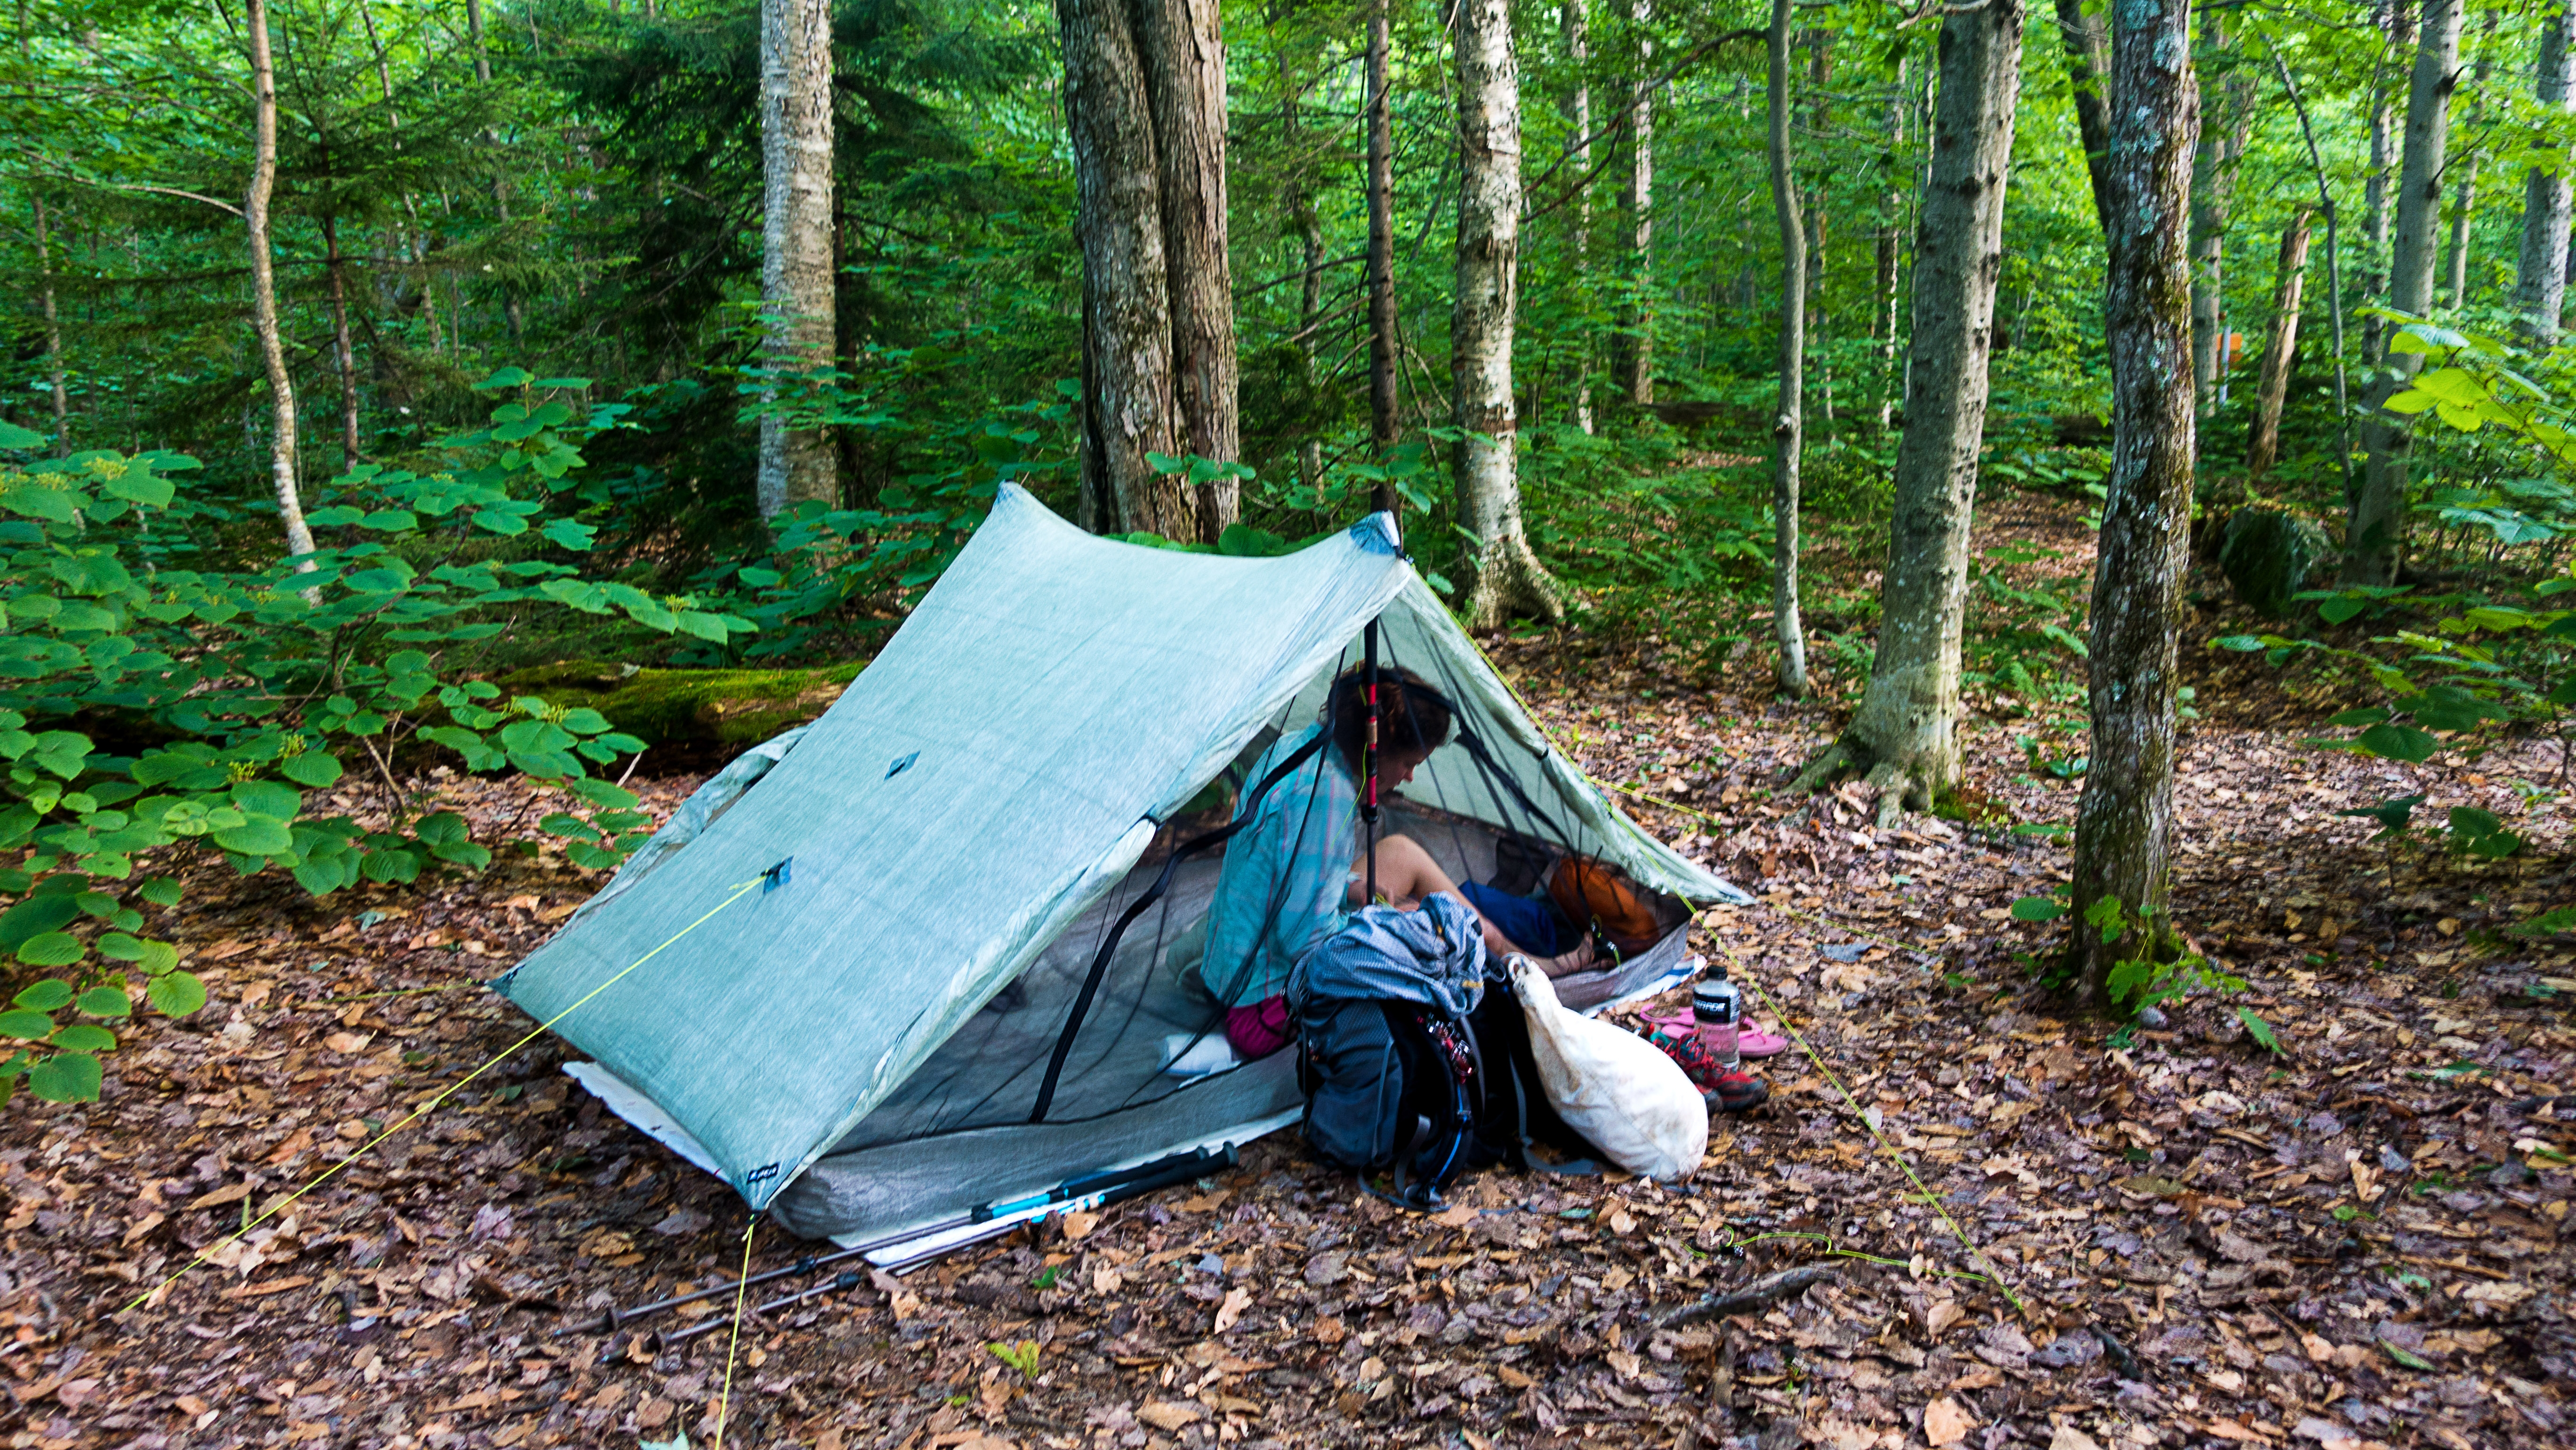 Two-person Duplex. & UL Tents: What You May Be Thinking But Were Afraid to Say - The Trek